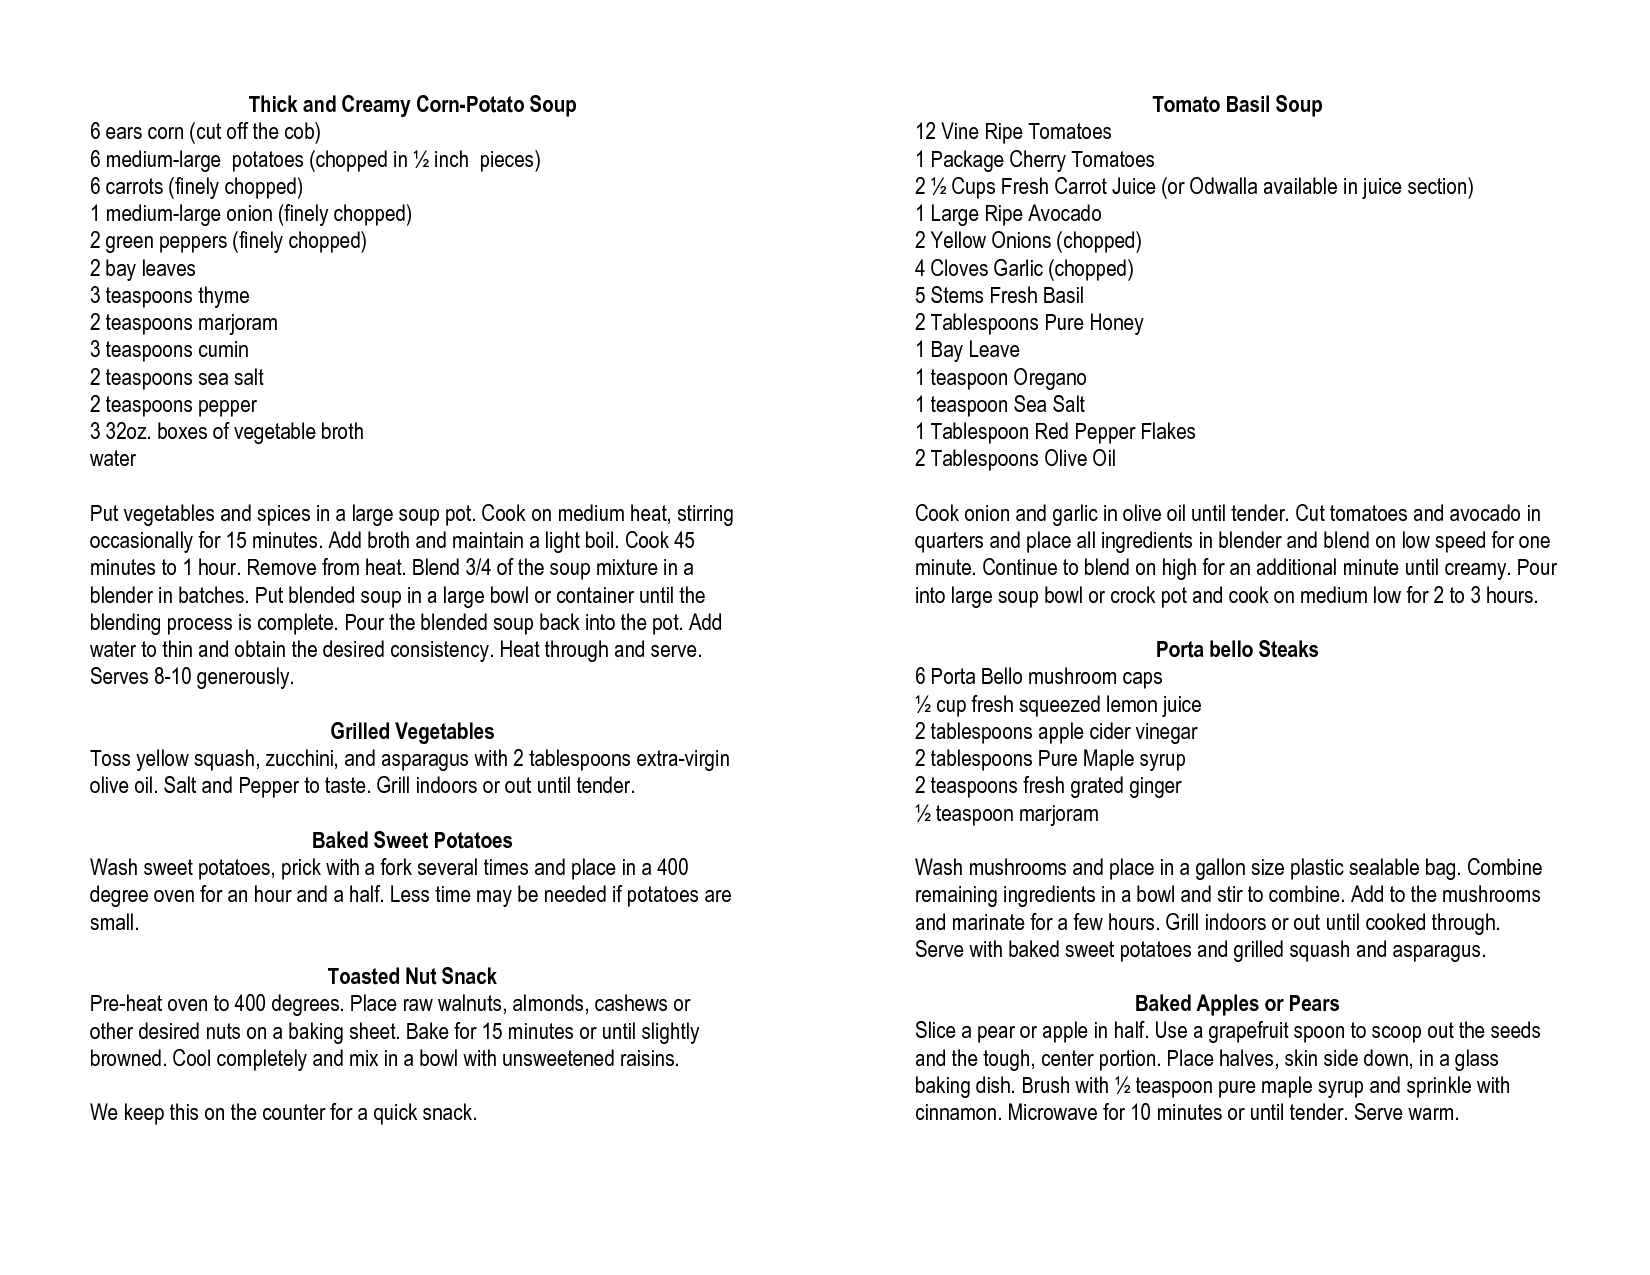 Daniel Fast Instructions - Great daniel fast recipes to try omit the honey and maple syrup for the